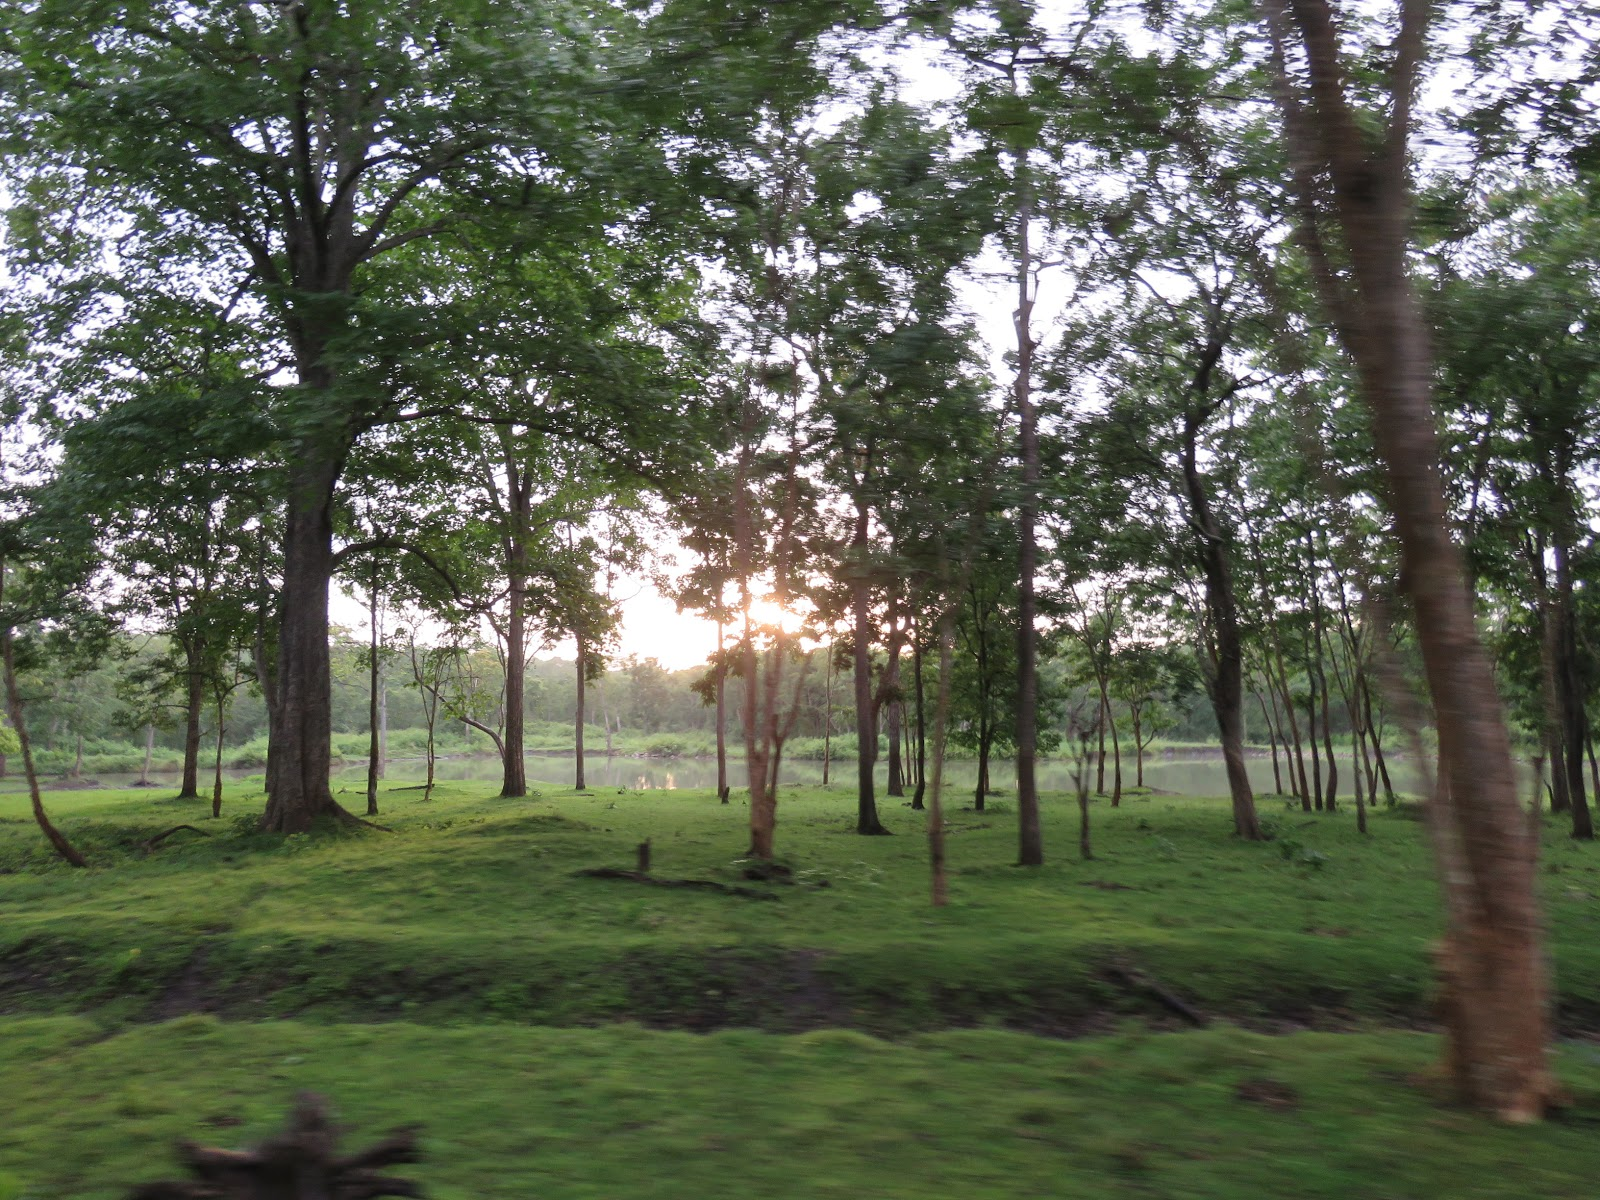 Karthik's Wander: Nature and wilderness - Kabini and all